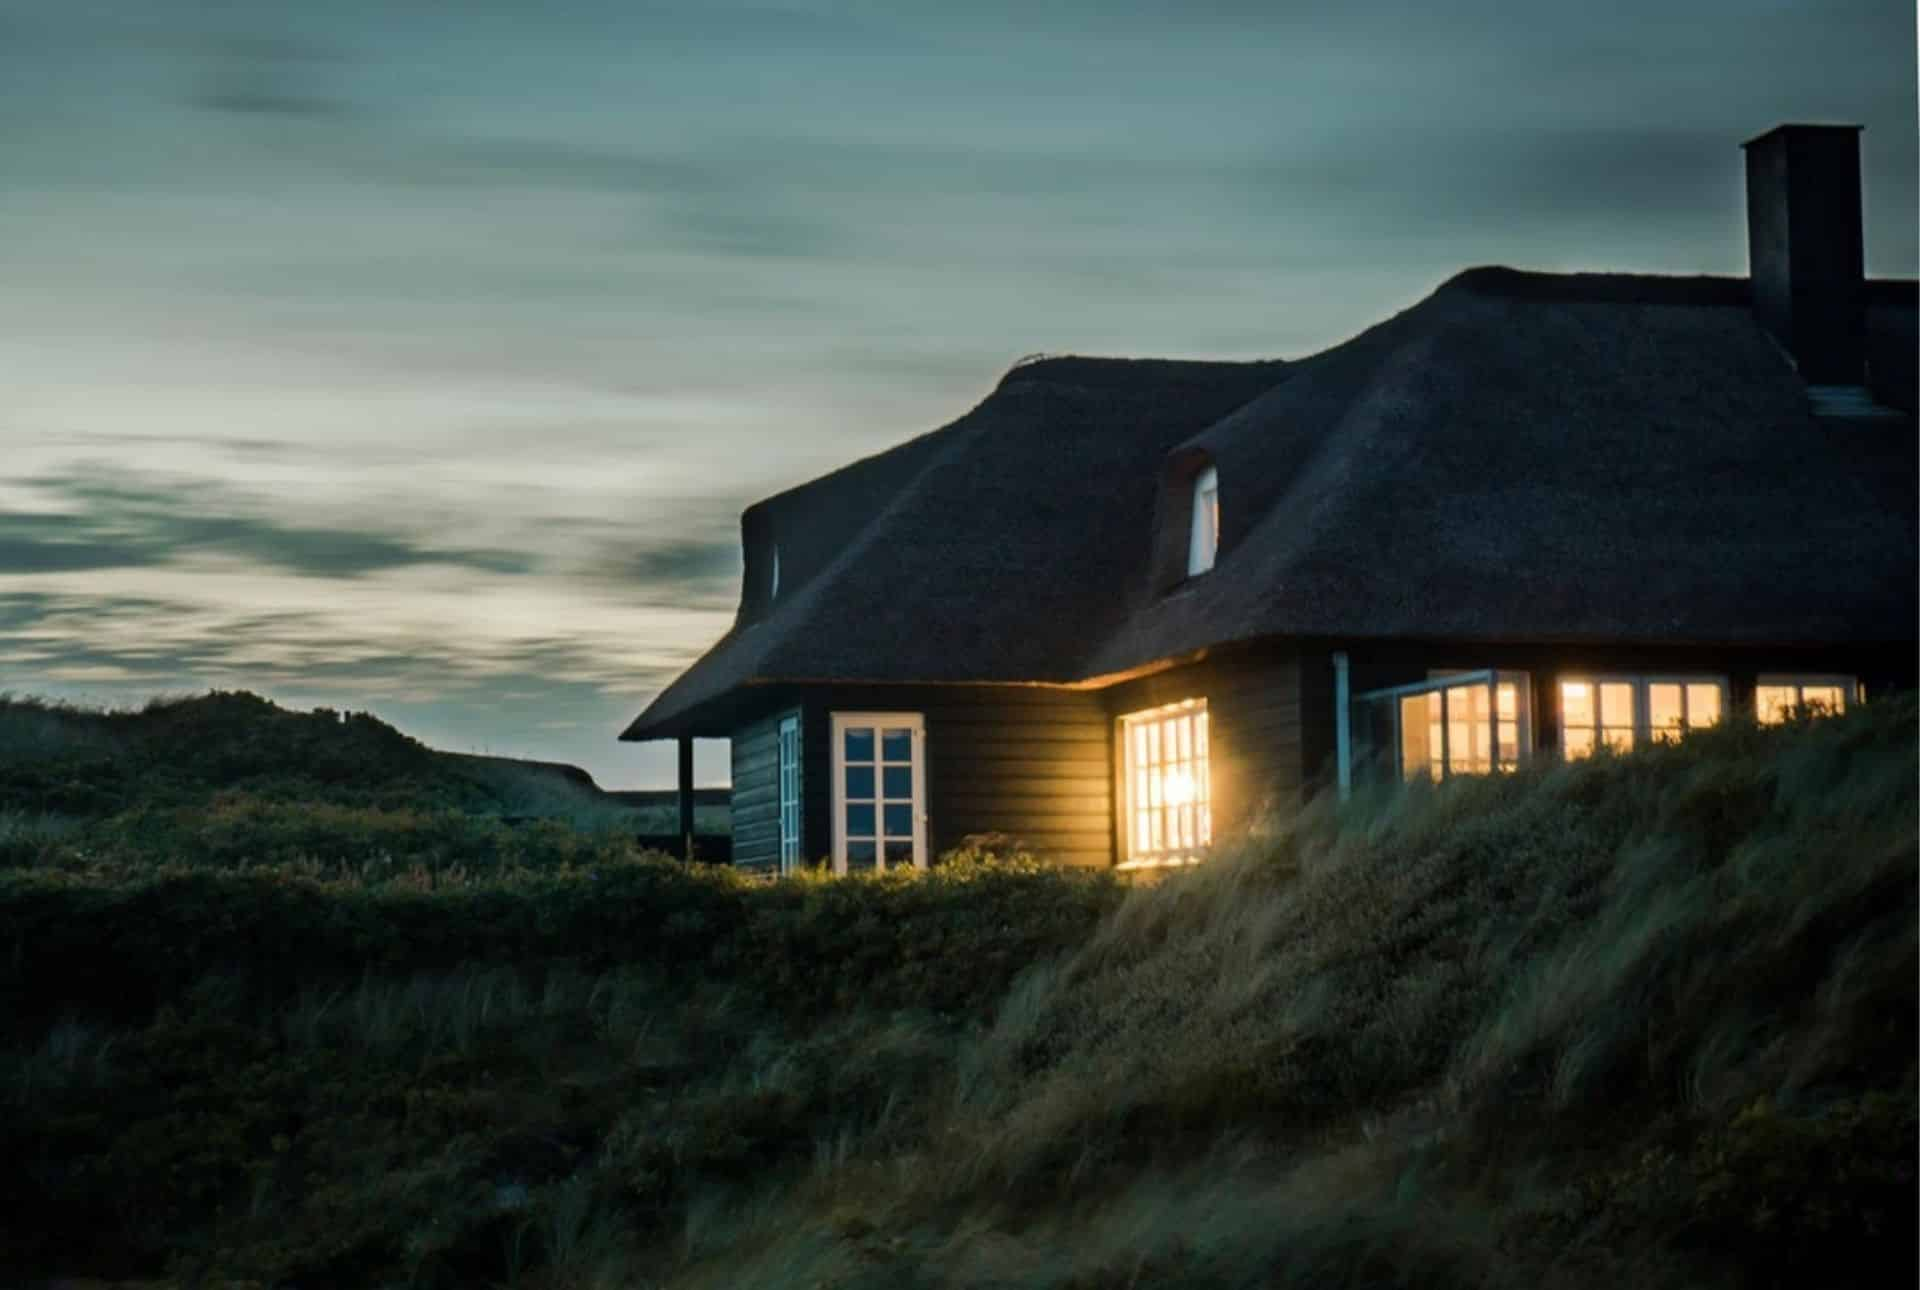 Gray house surrounded by grass under a blue, cloudy night sky.